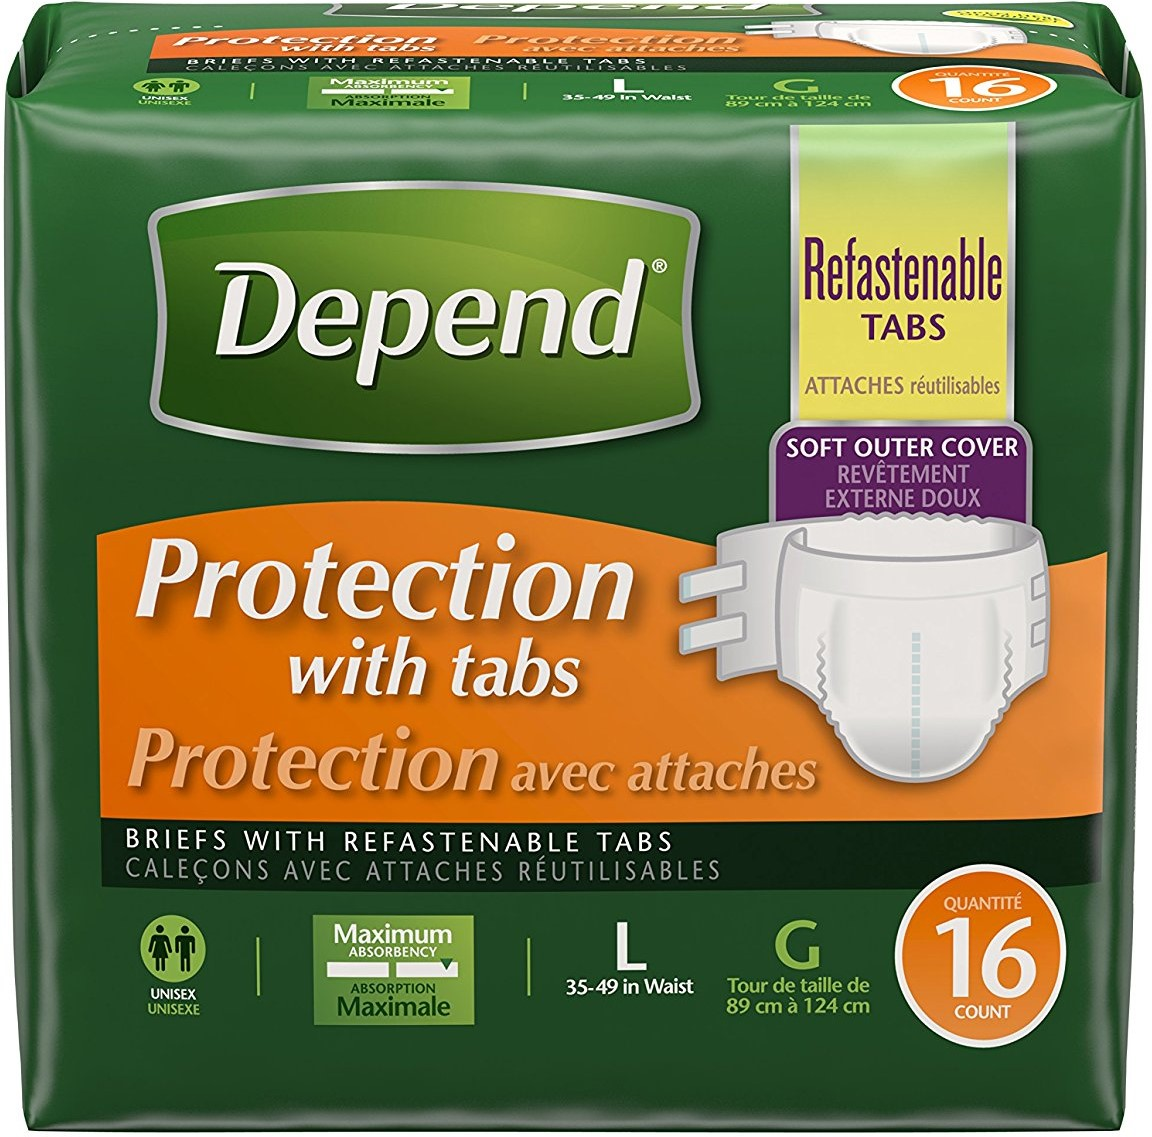 6 Pack - Depend Briefs, Protection with Tabs, Maximum Absorbency, Unisex, Large 16 ea